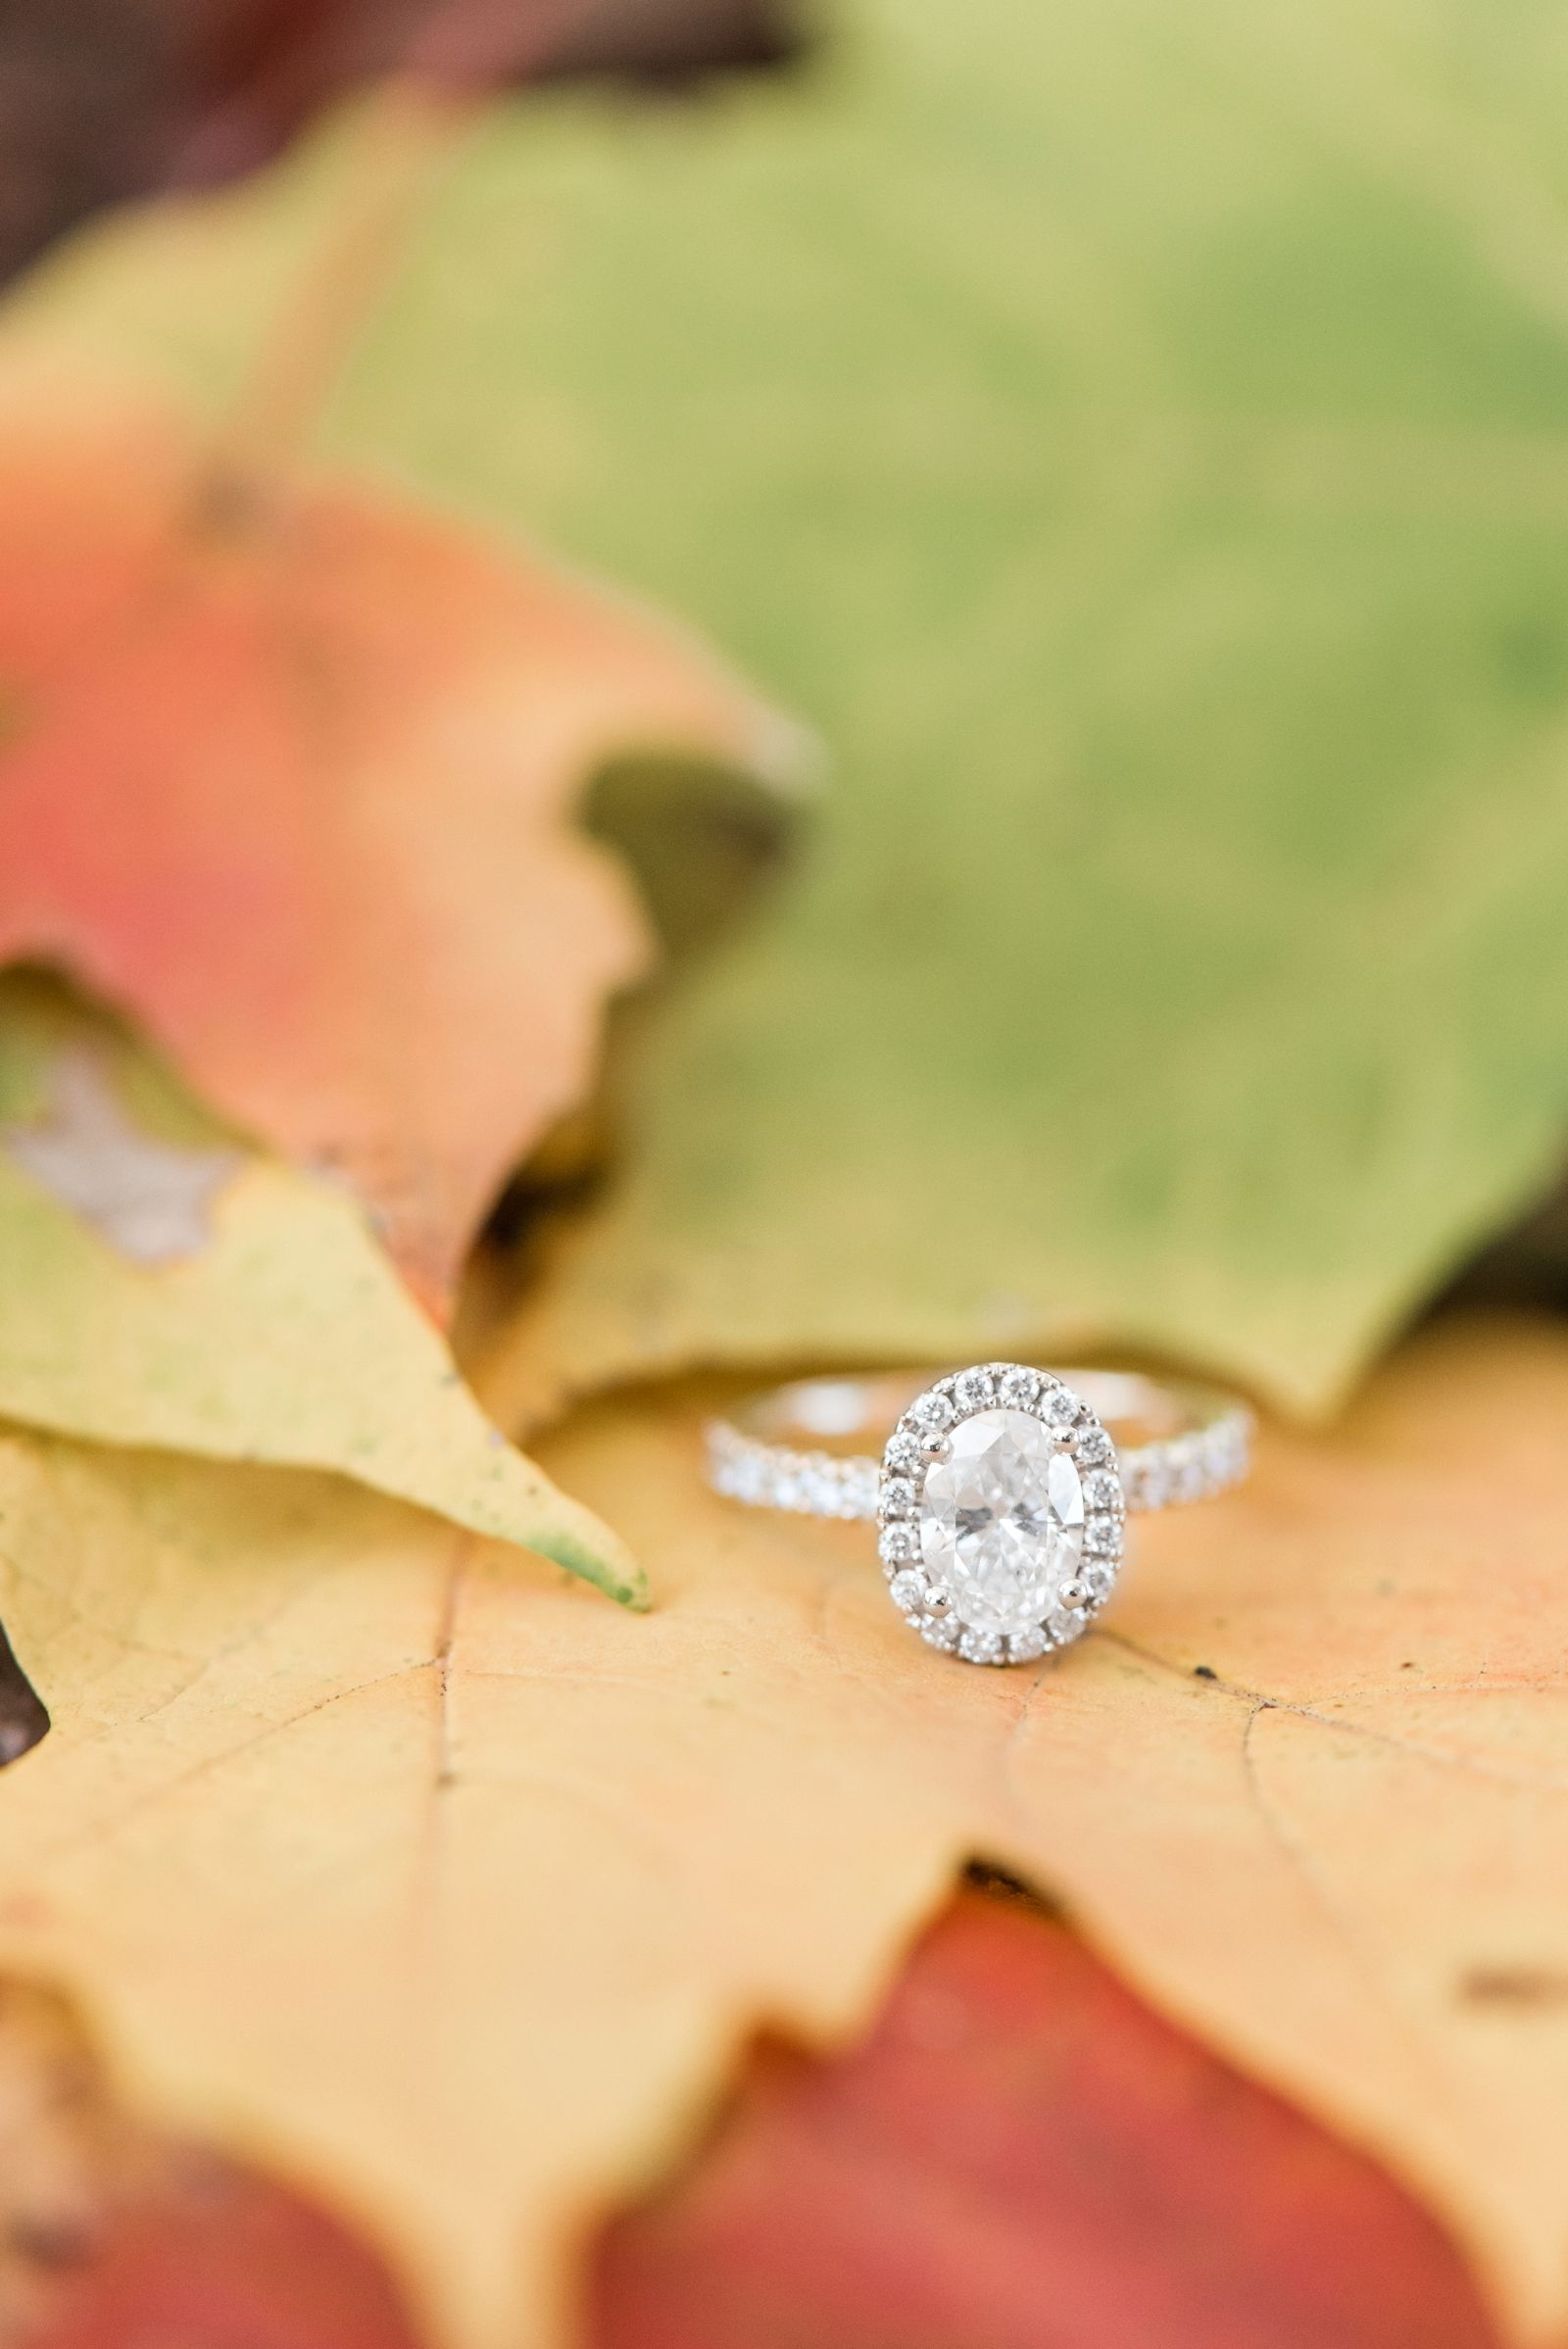 richmond-virginia-carillon-byrd-park-and-browns-island-fall-engagement-session-photo_7109.jpg